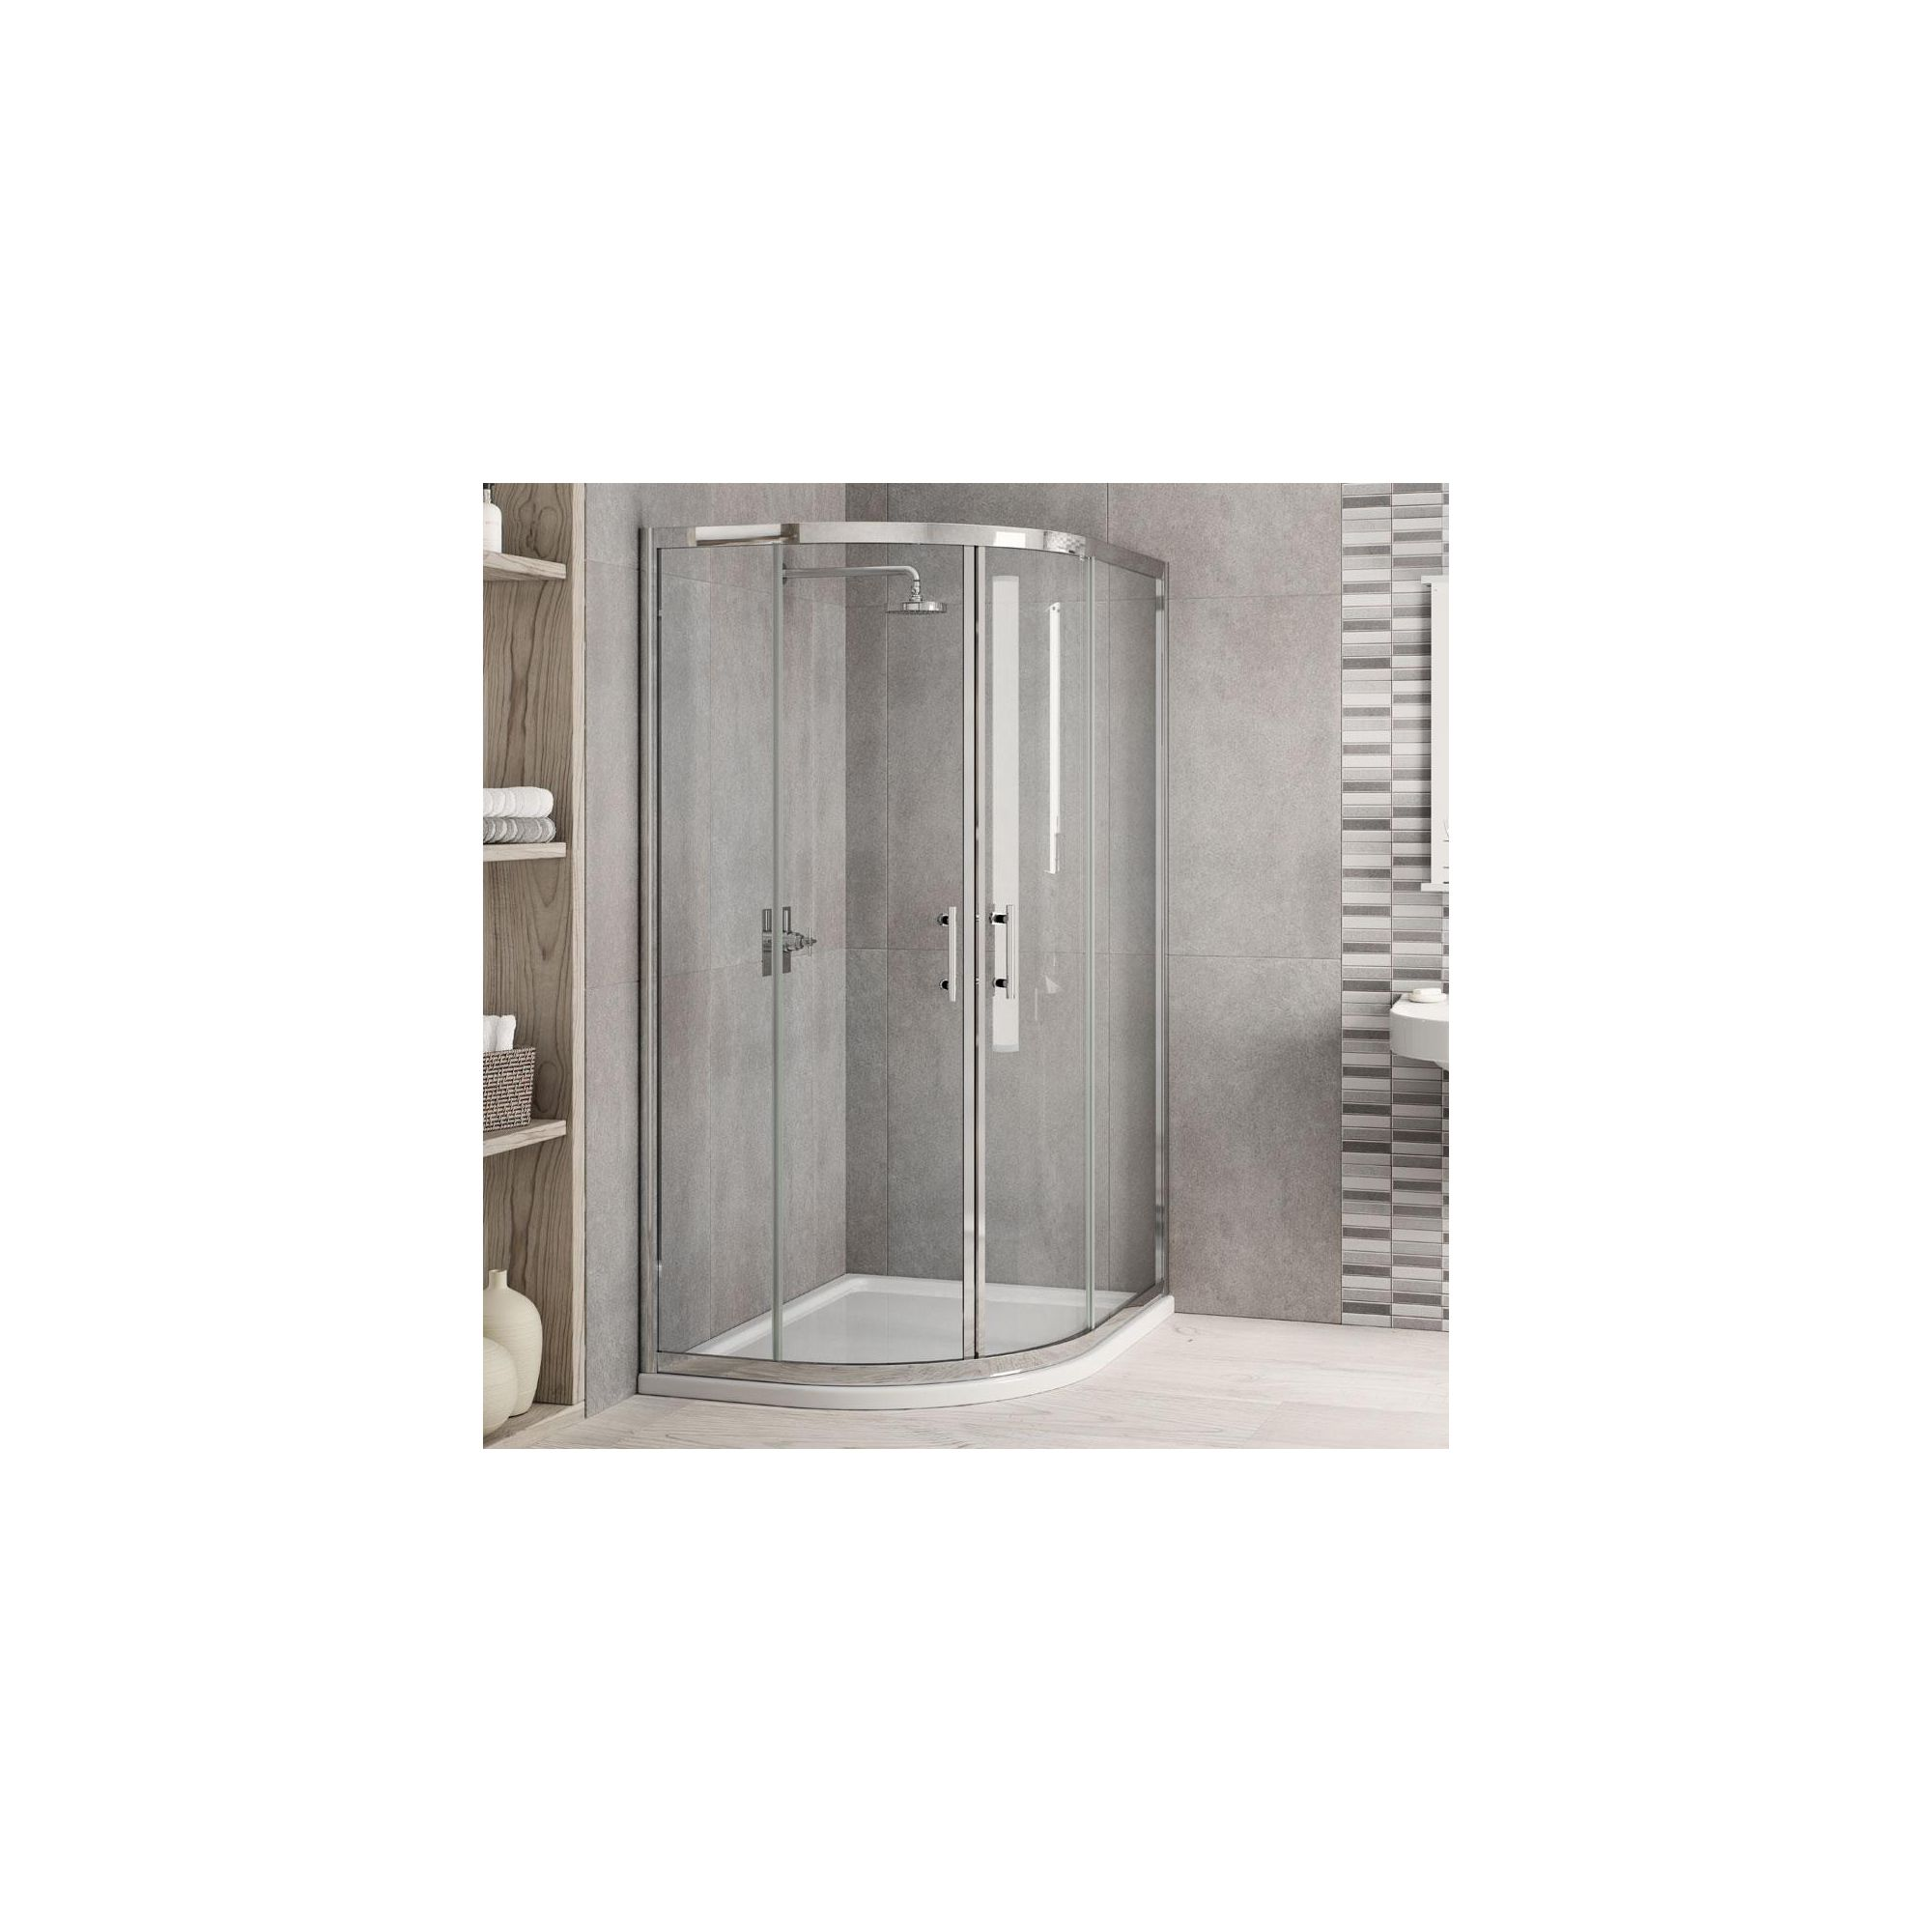 Elemis Inspire Offset Quadrant Shower Enclosure, 1200mm x 800mm, 6mm Glass, Low Profile Tray, Right Handed at Tesco Direct